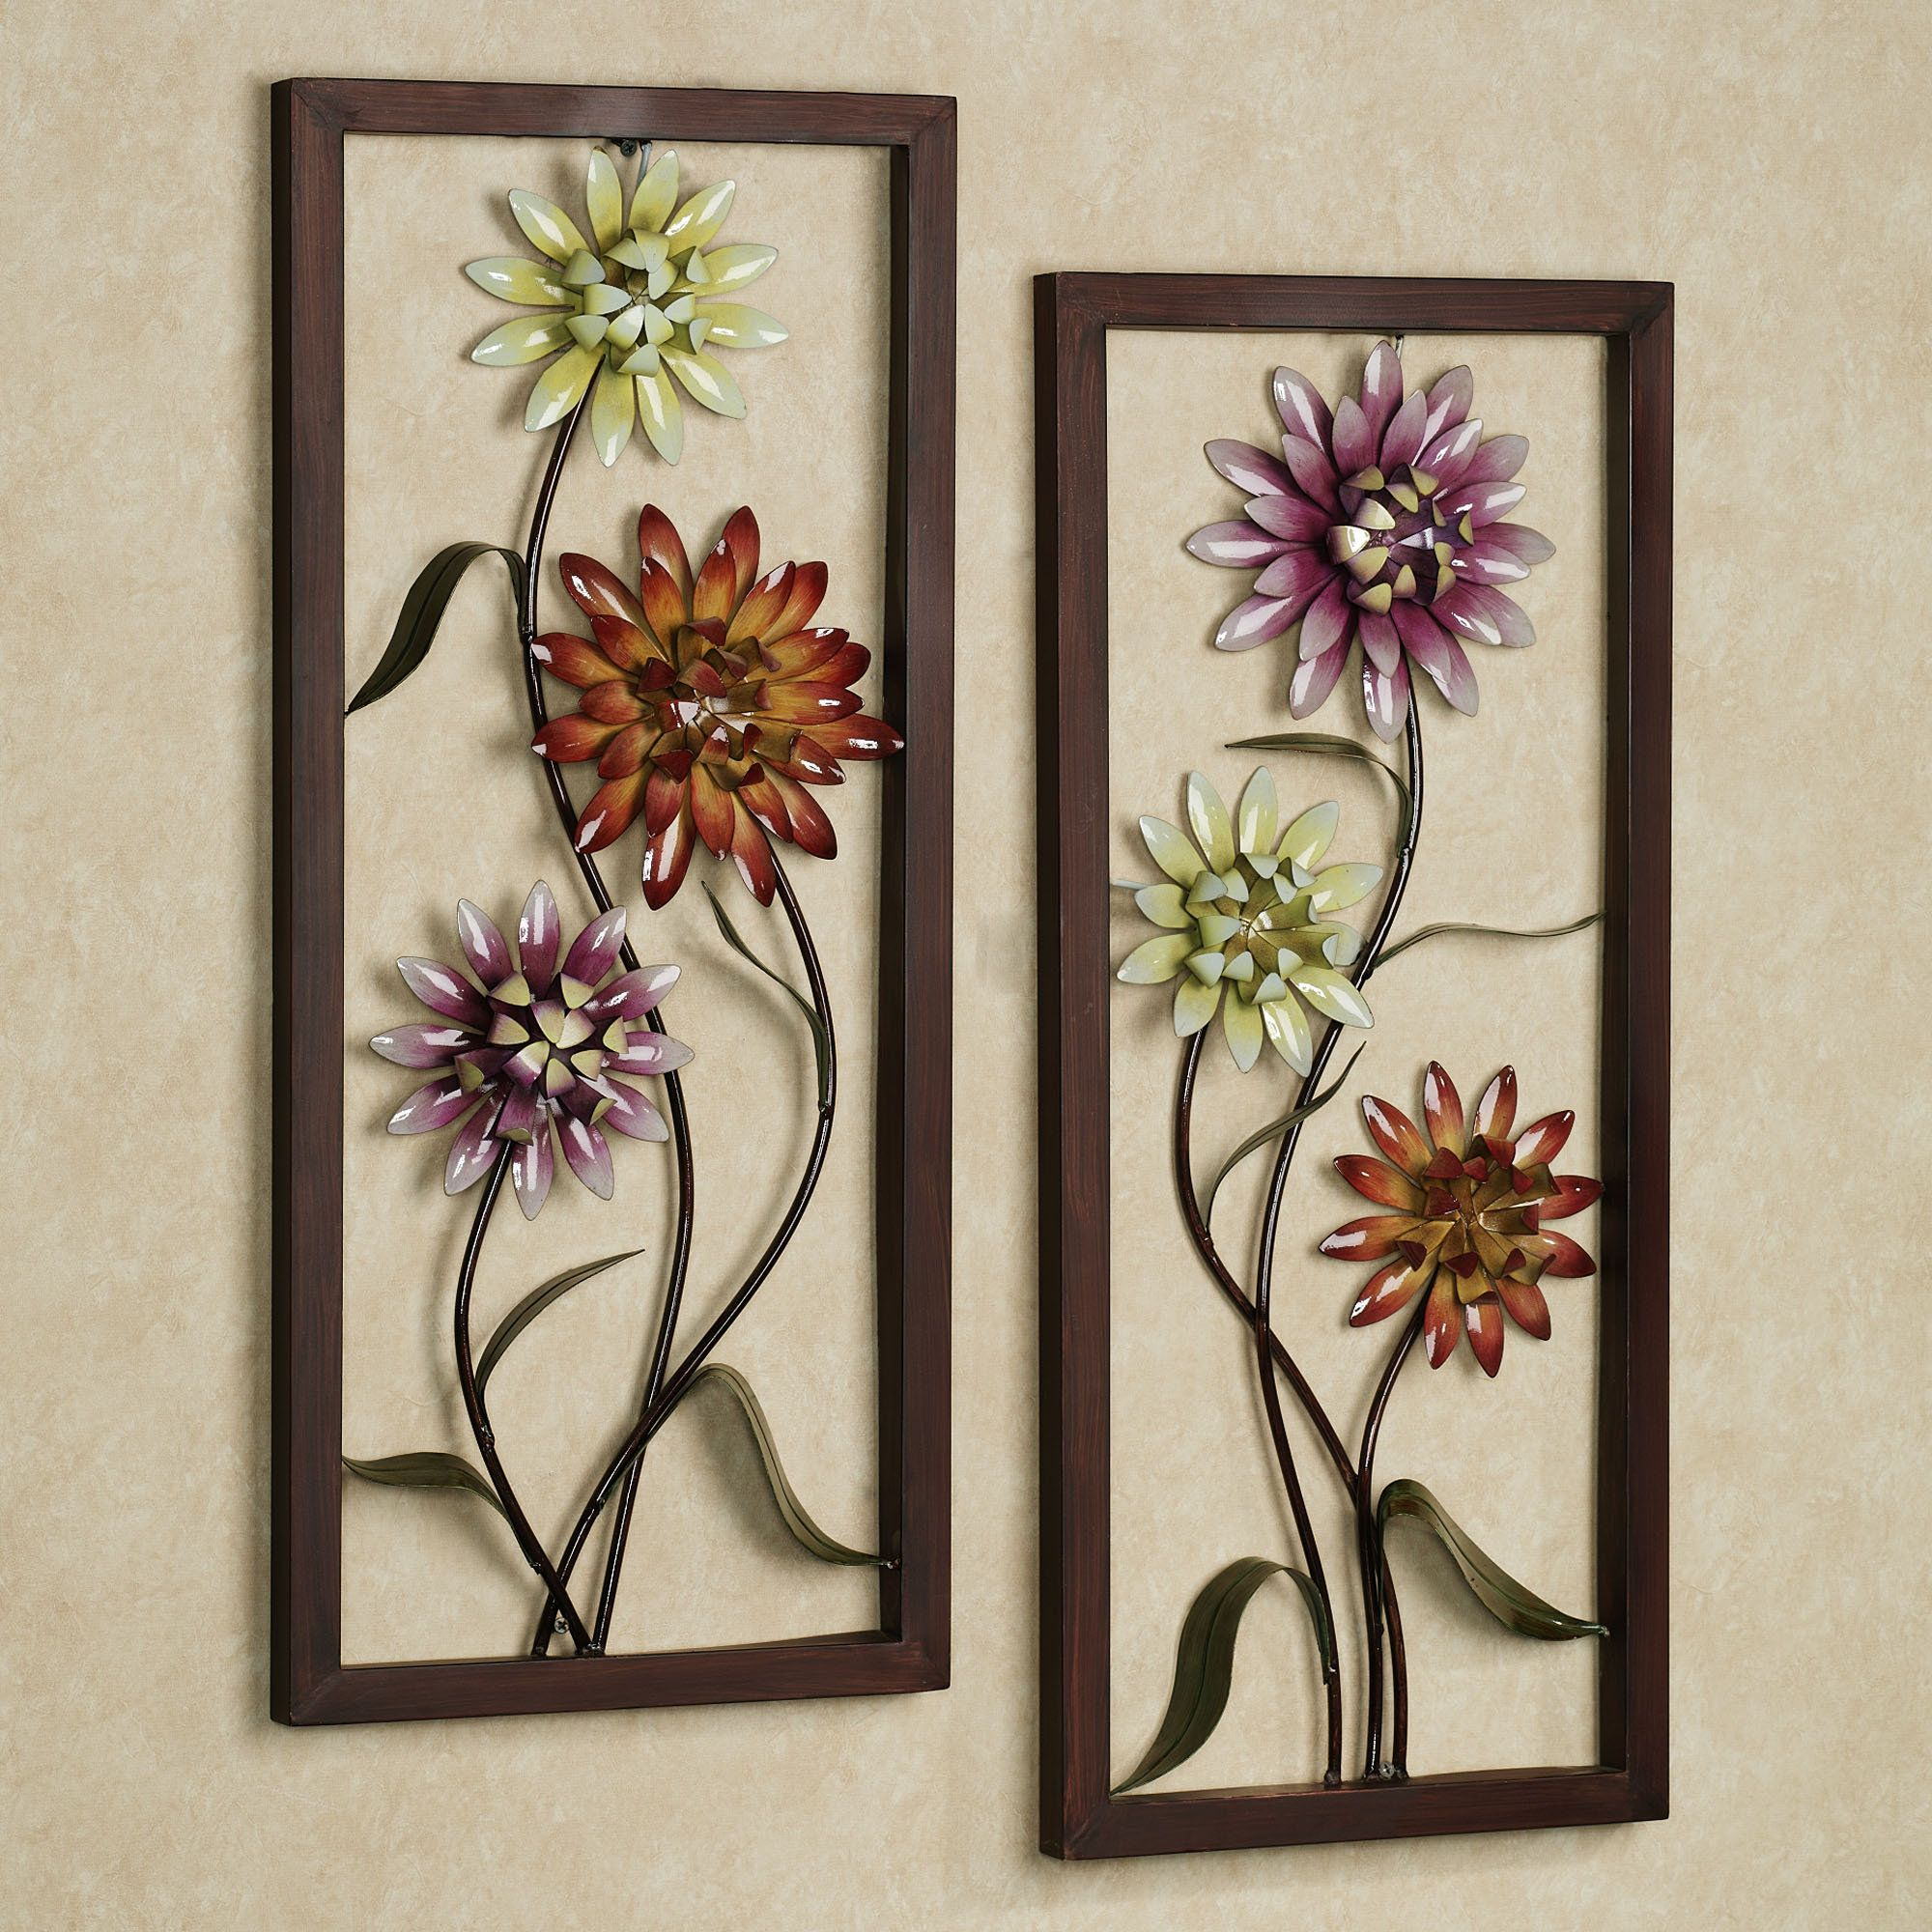 Some Ideas For Your Bathroom Wall Decor Bathroom Wall Art For Contemporary Bathroom Design Wall Decor Pictures Floral Wall Art Wall Painting Decor